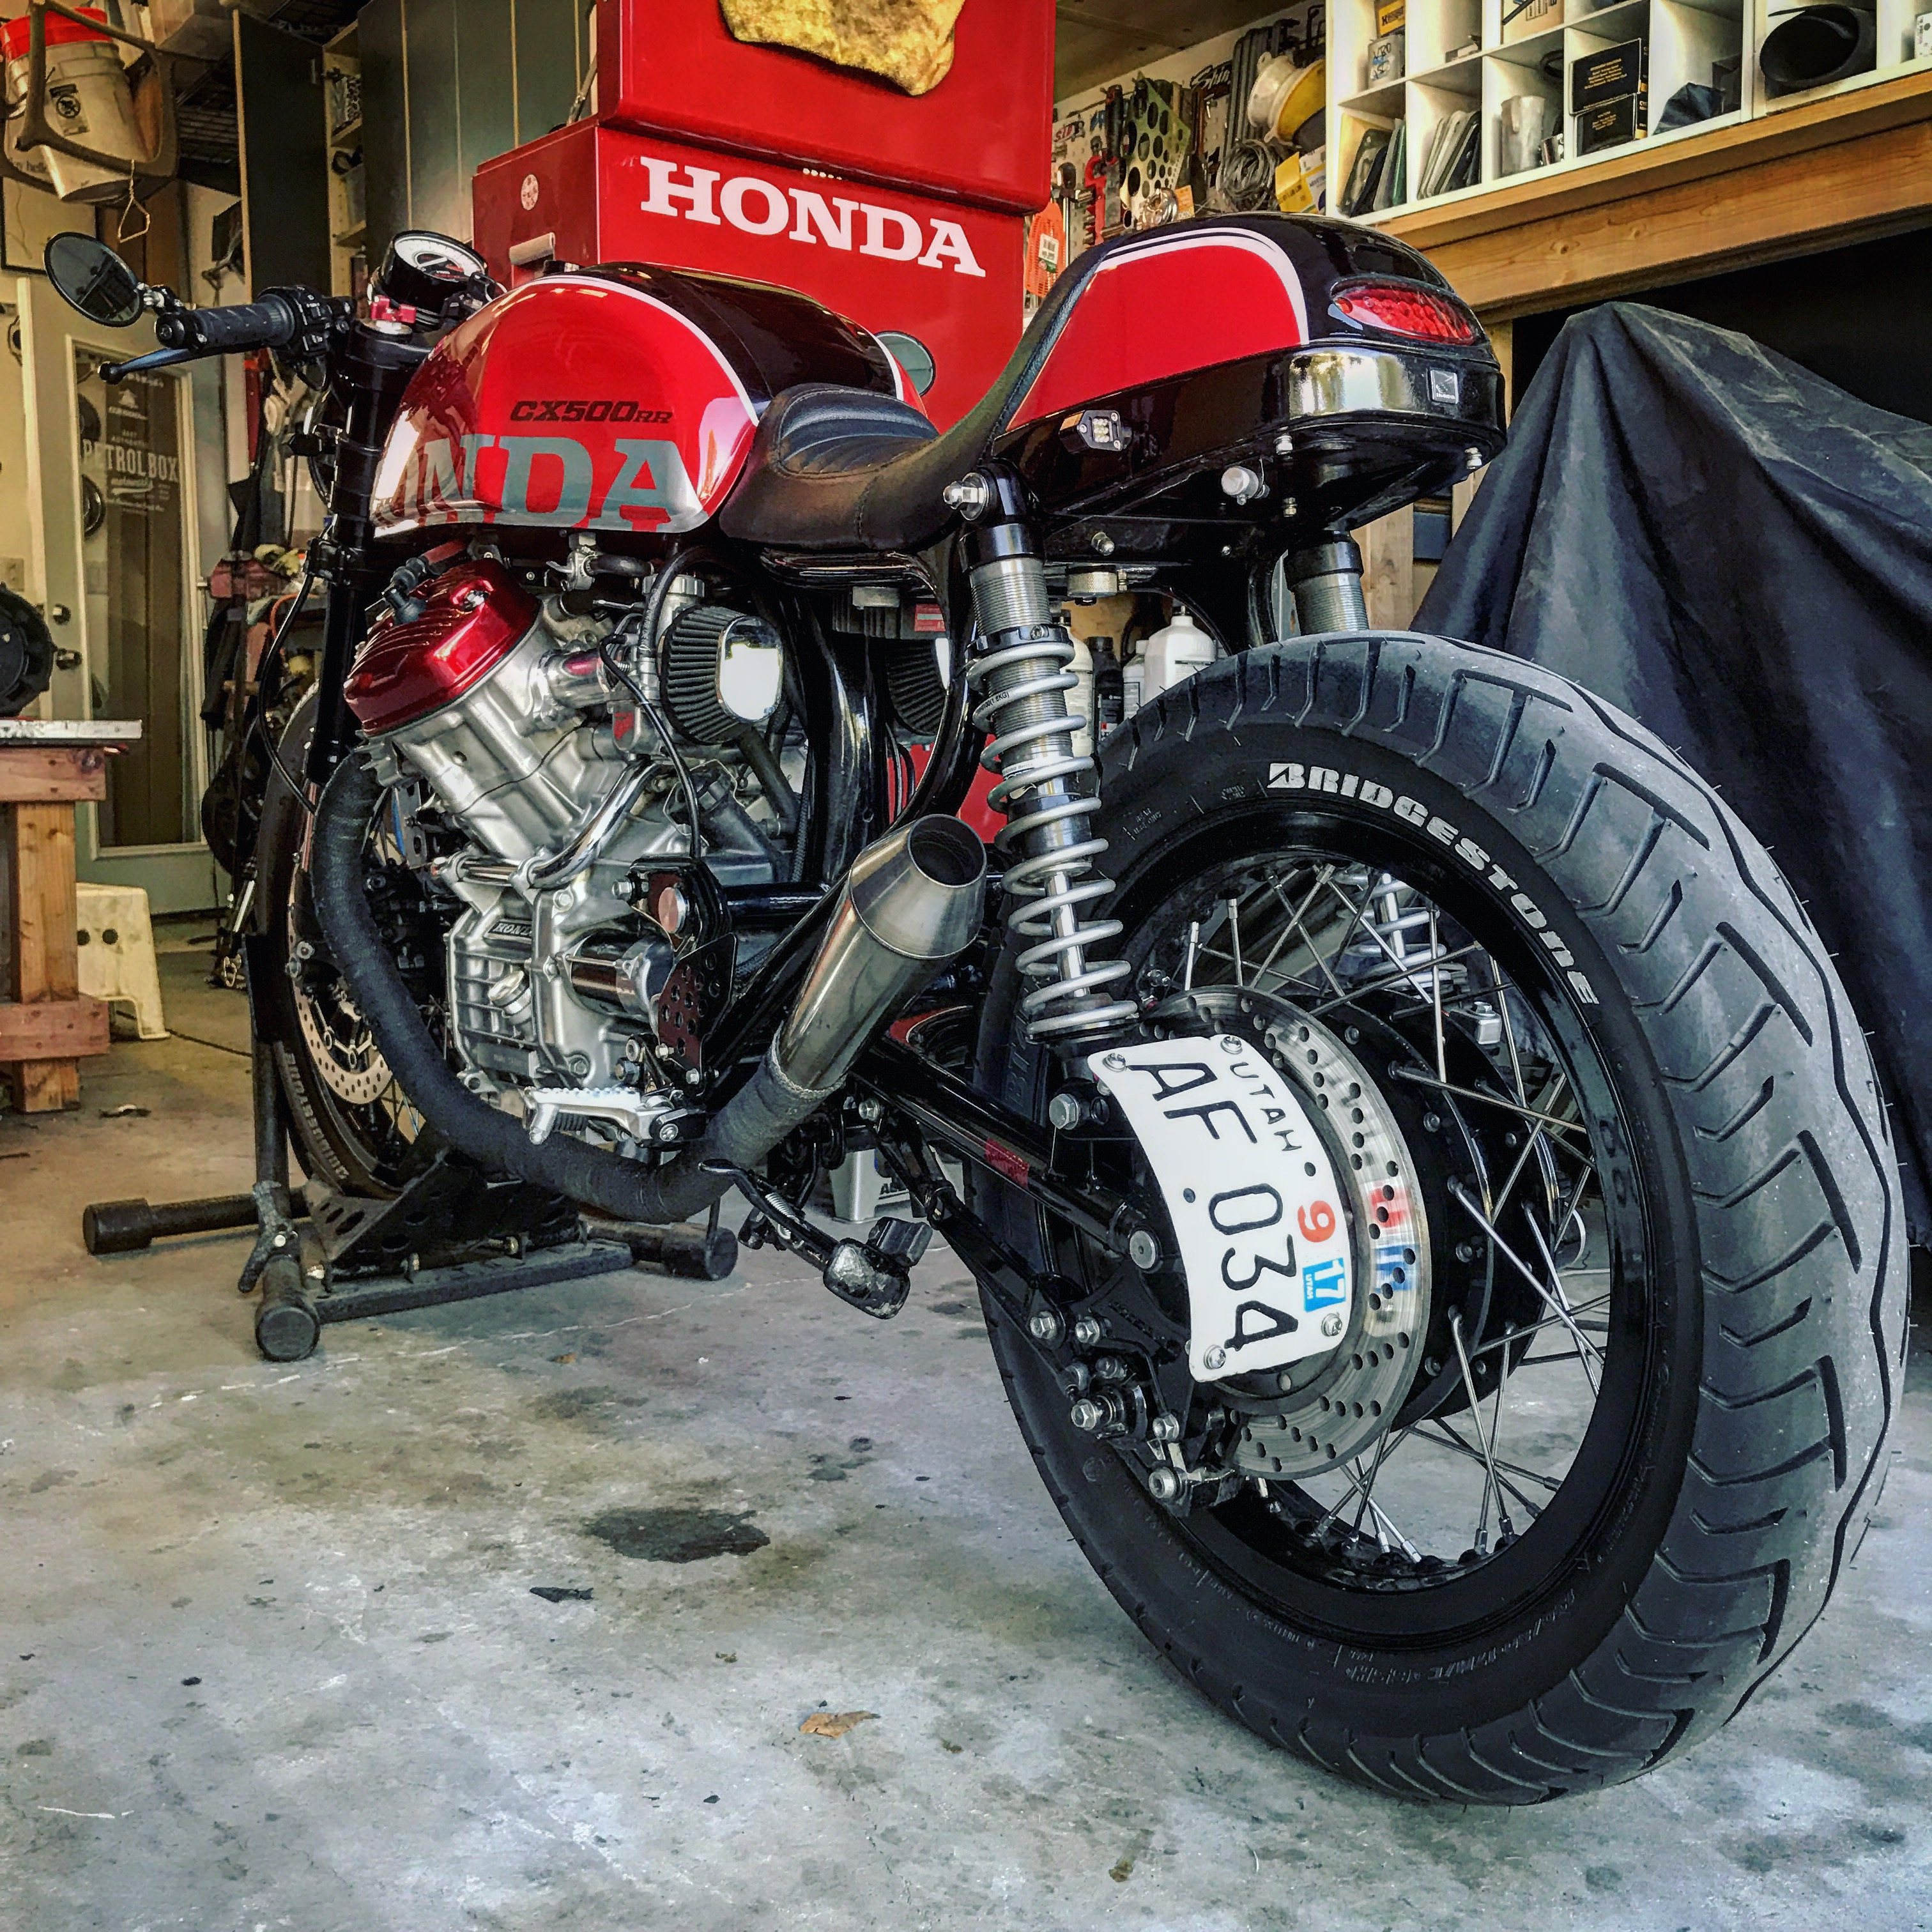 1978 Honda Cx500 Tire Size: Check In And Post Your Pictures!